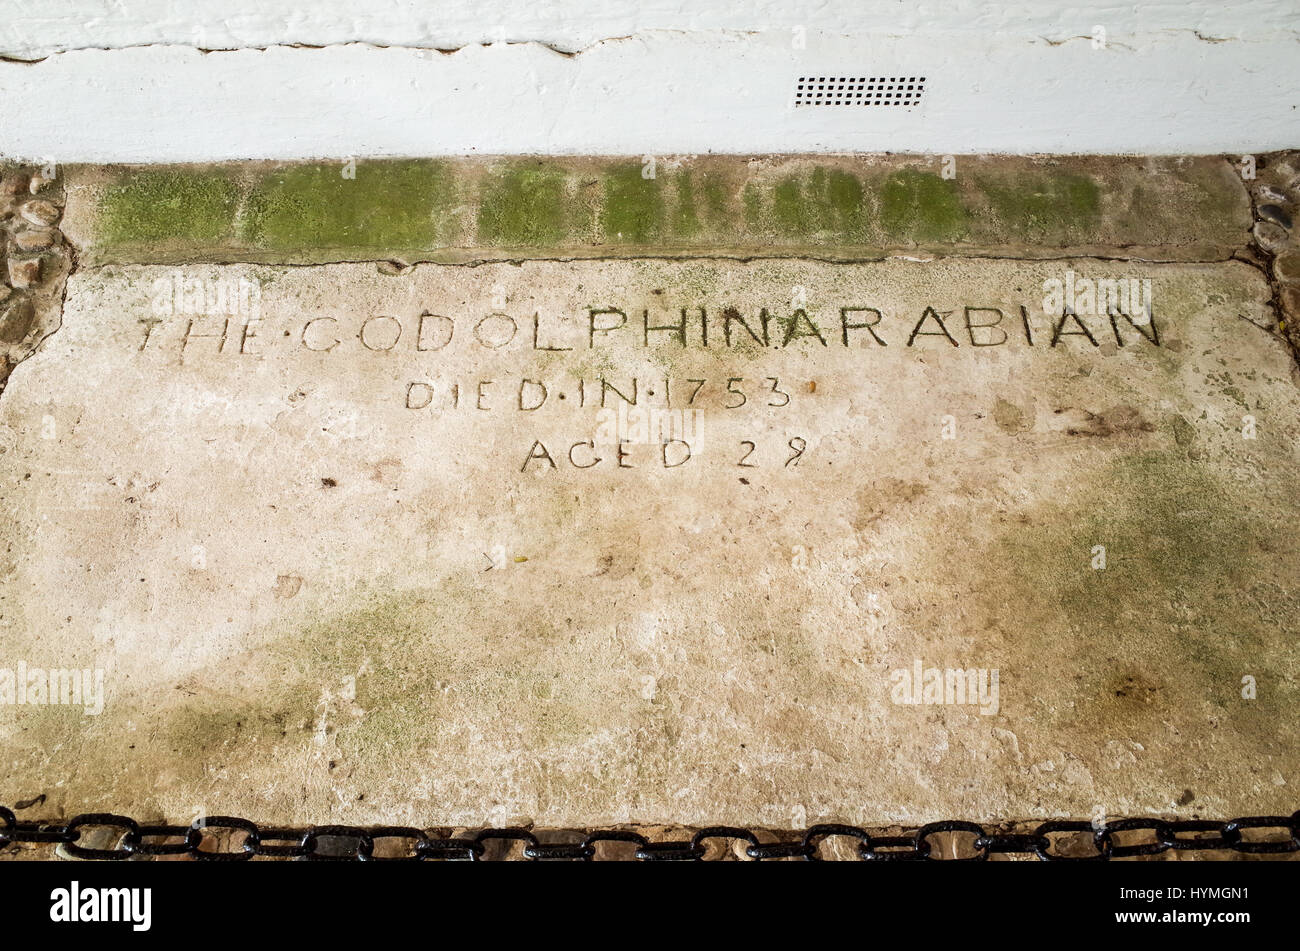 The grave of Godolphin Arabian, aka Godolphin Barb, one of three stallions that established the modern thoroughbred - Stock Image